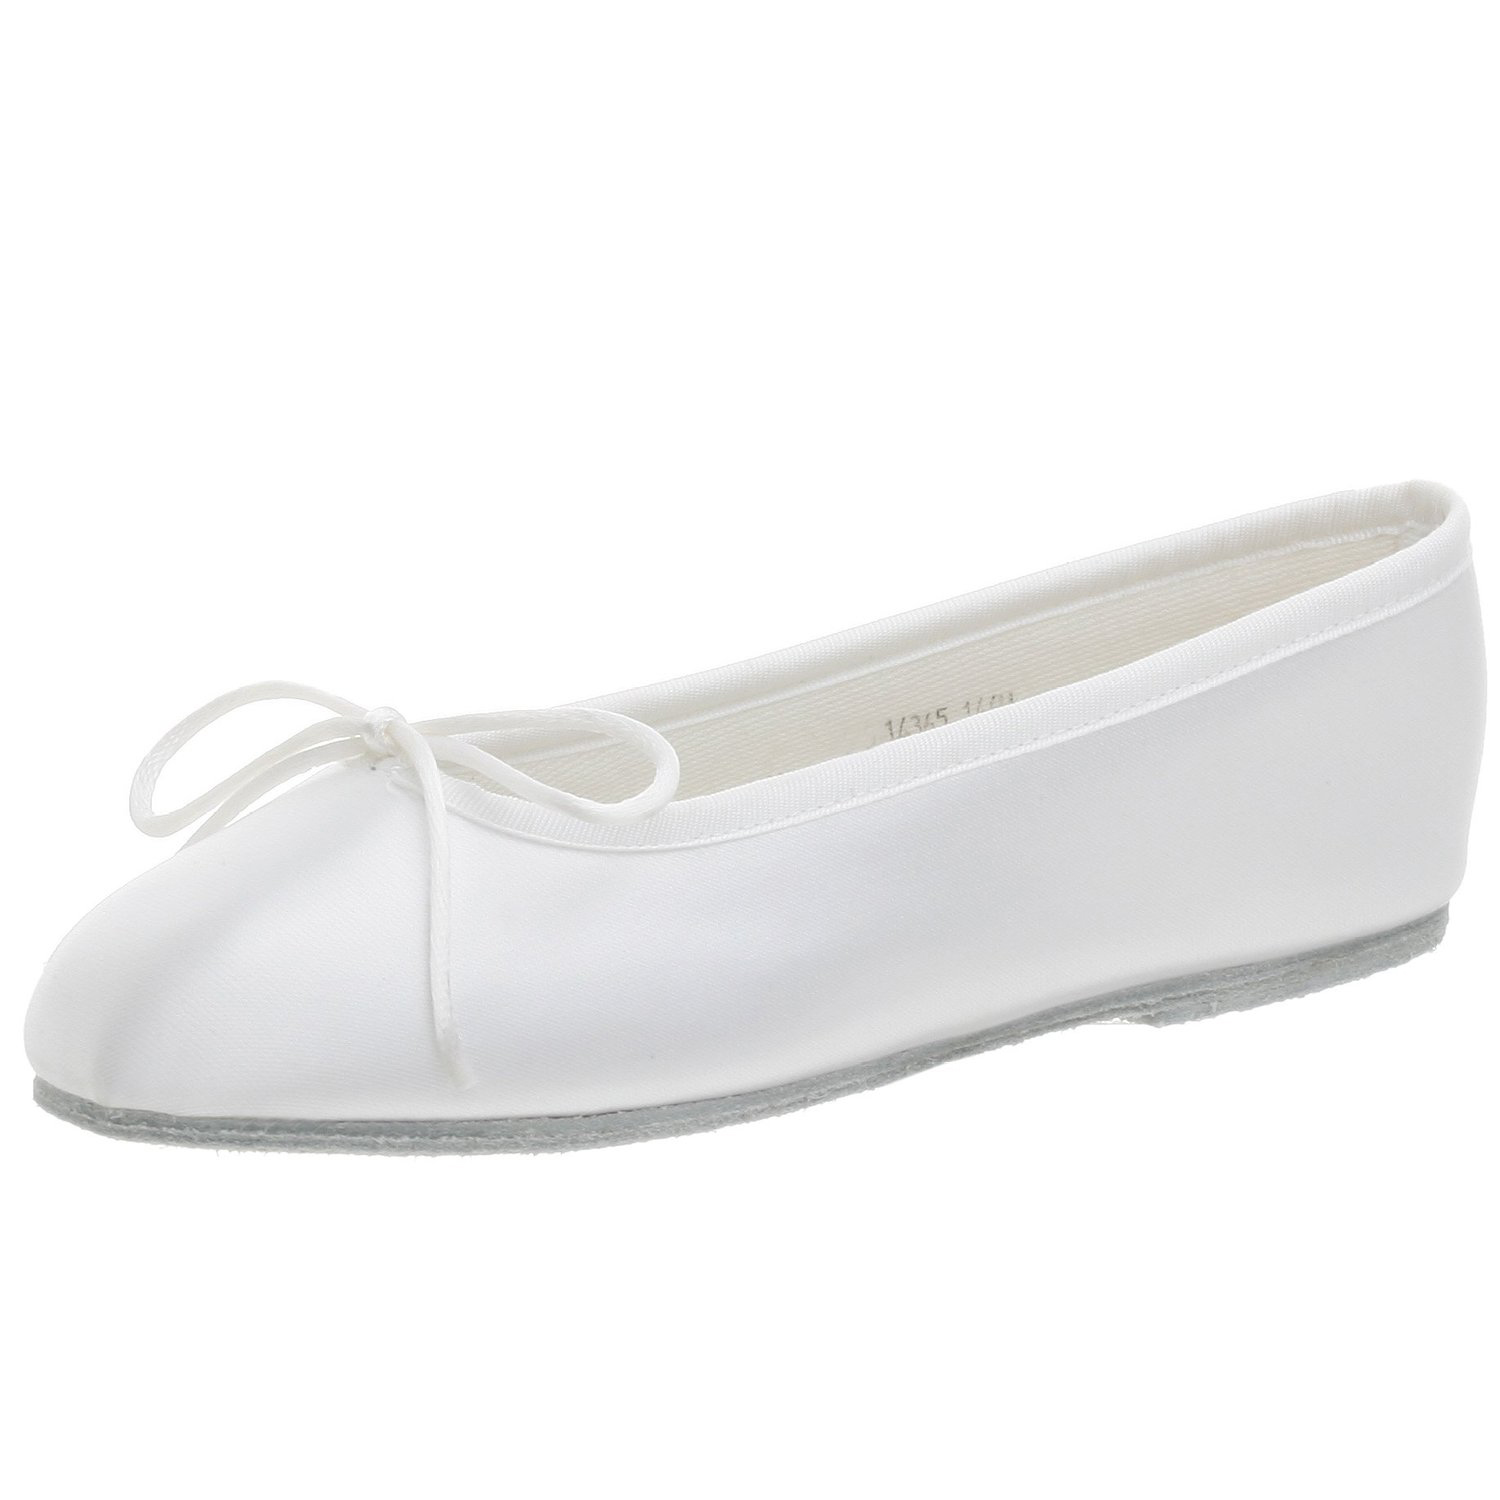 Dempsey Marie Baby & Girl's Satin Dyeable Ballet Flats with Cinch Tie Chord